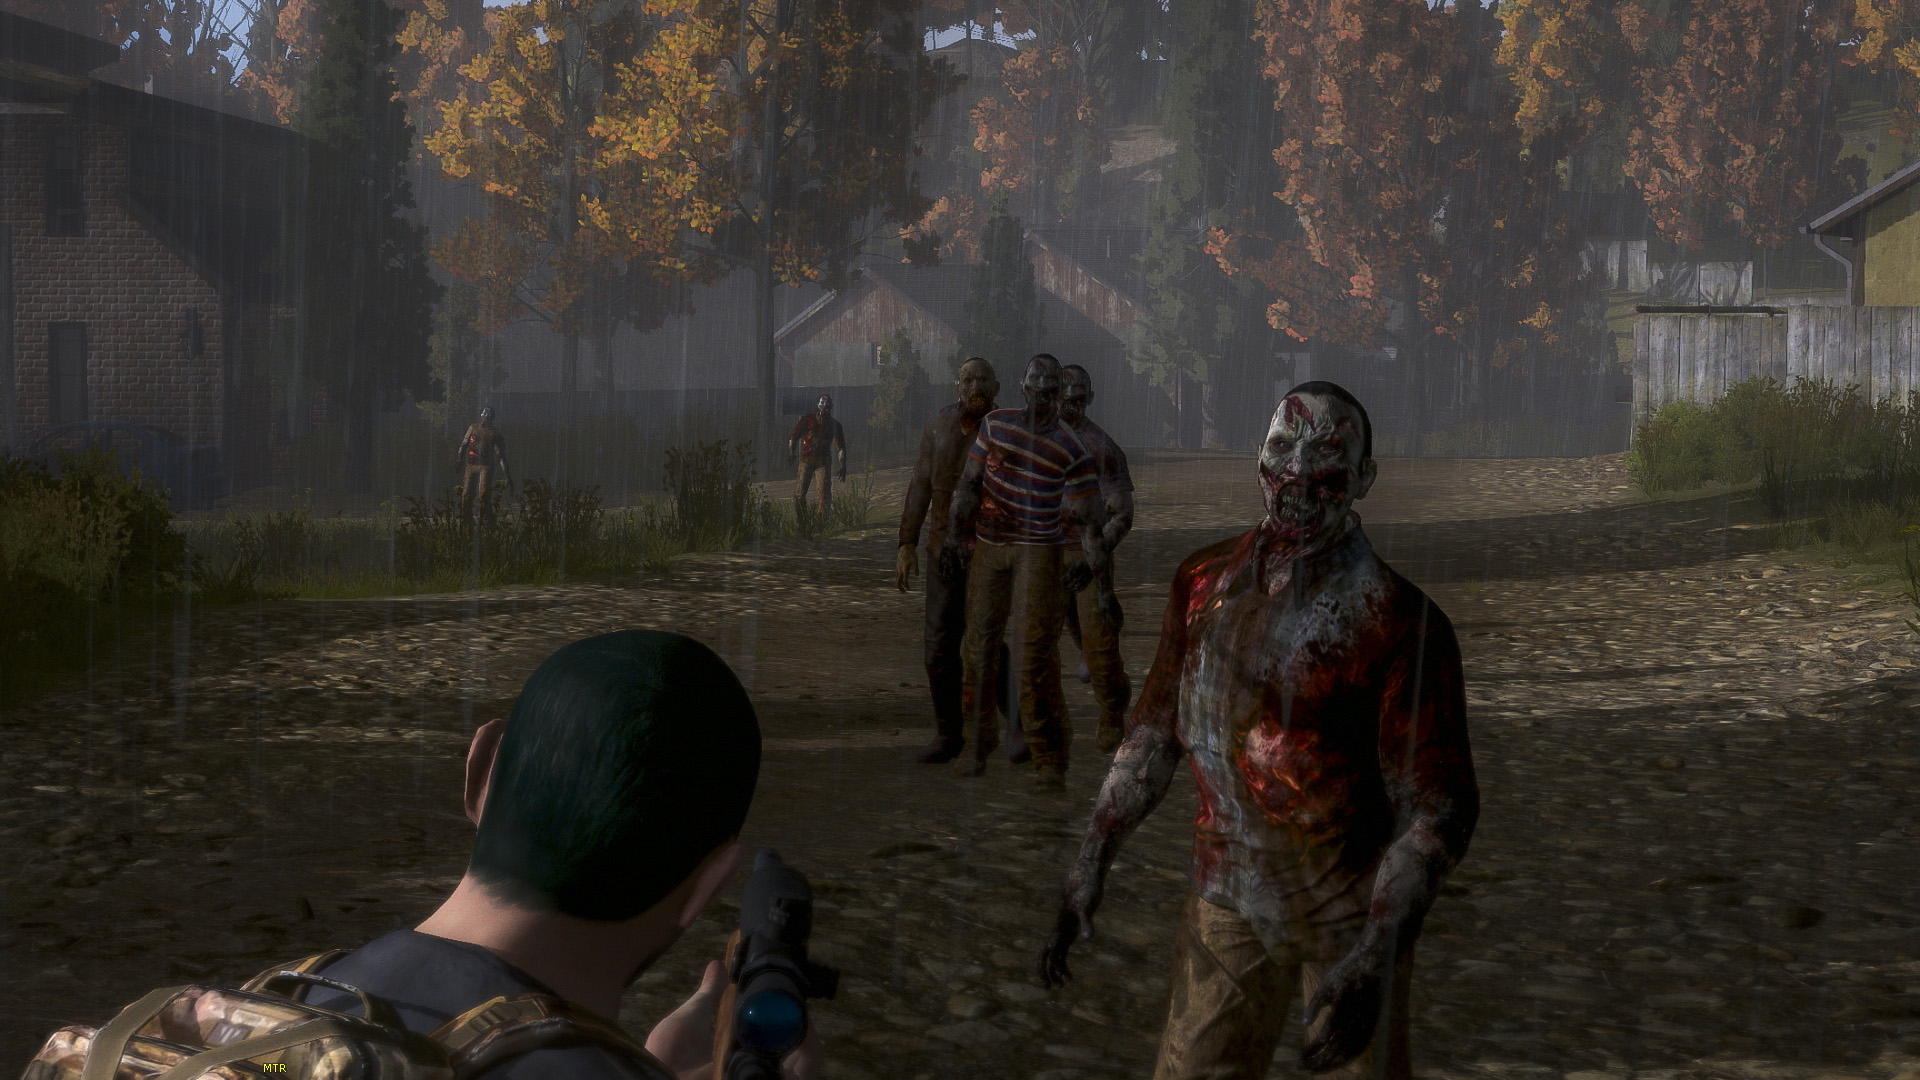 H1z1 Early Access Ot You Ve Got Red On You Neogaf